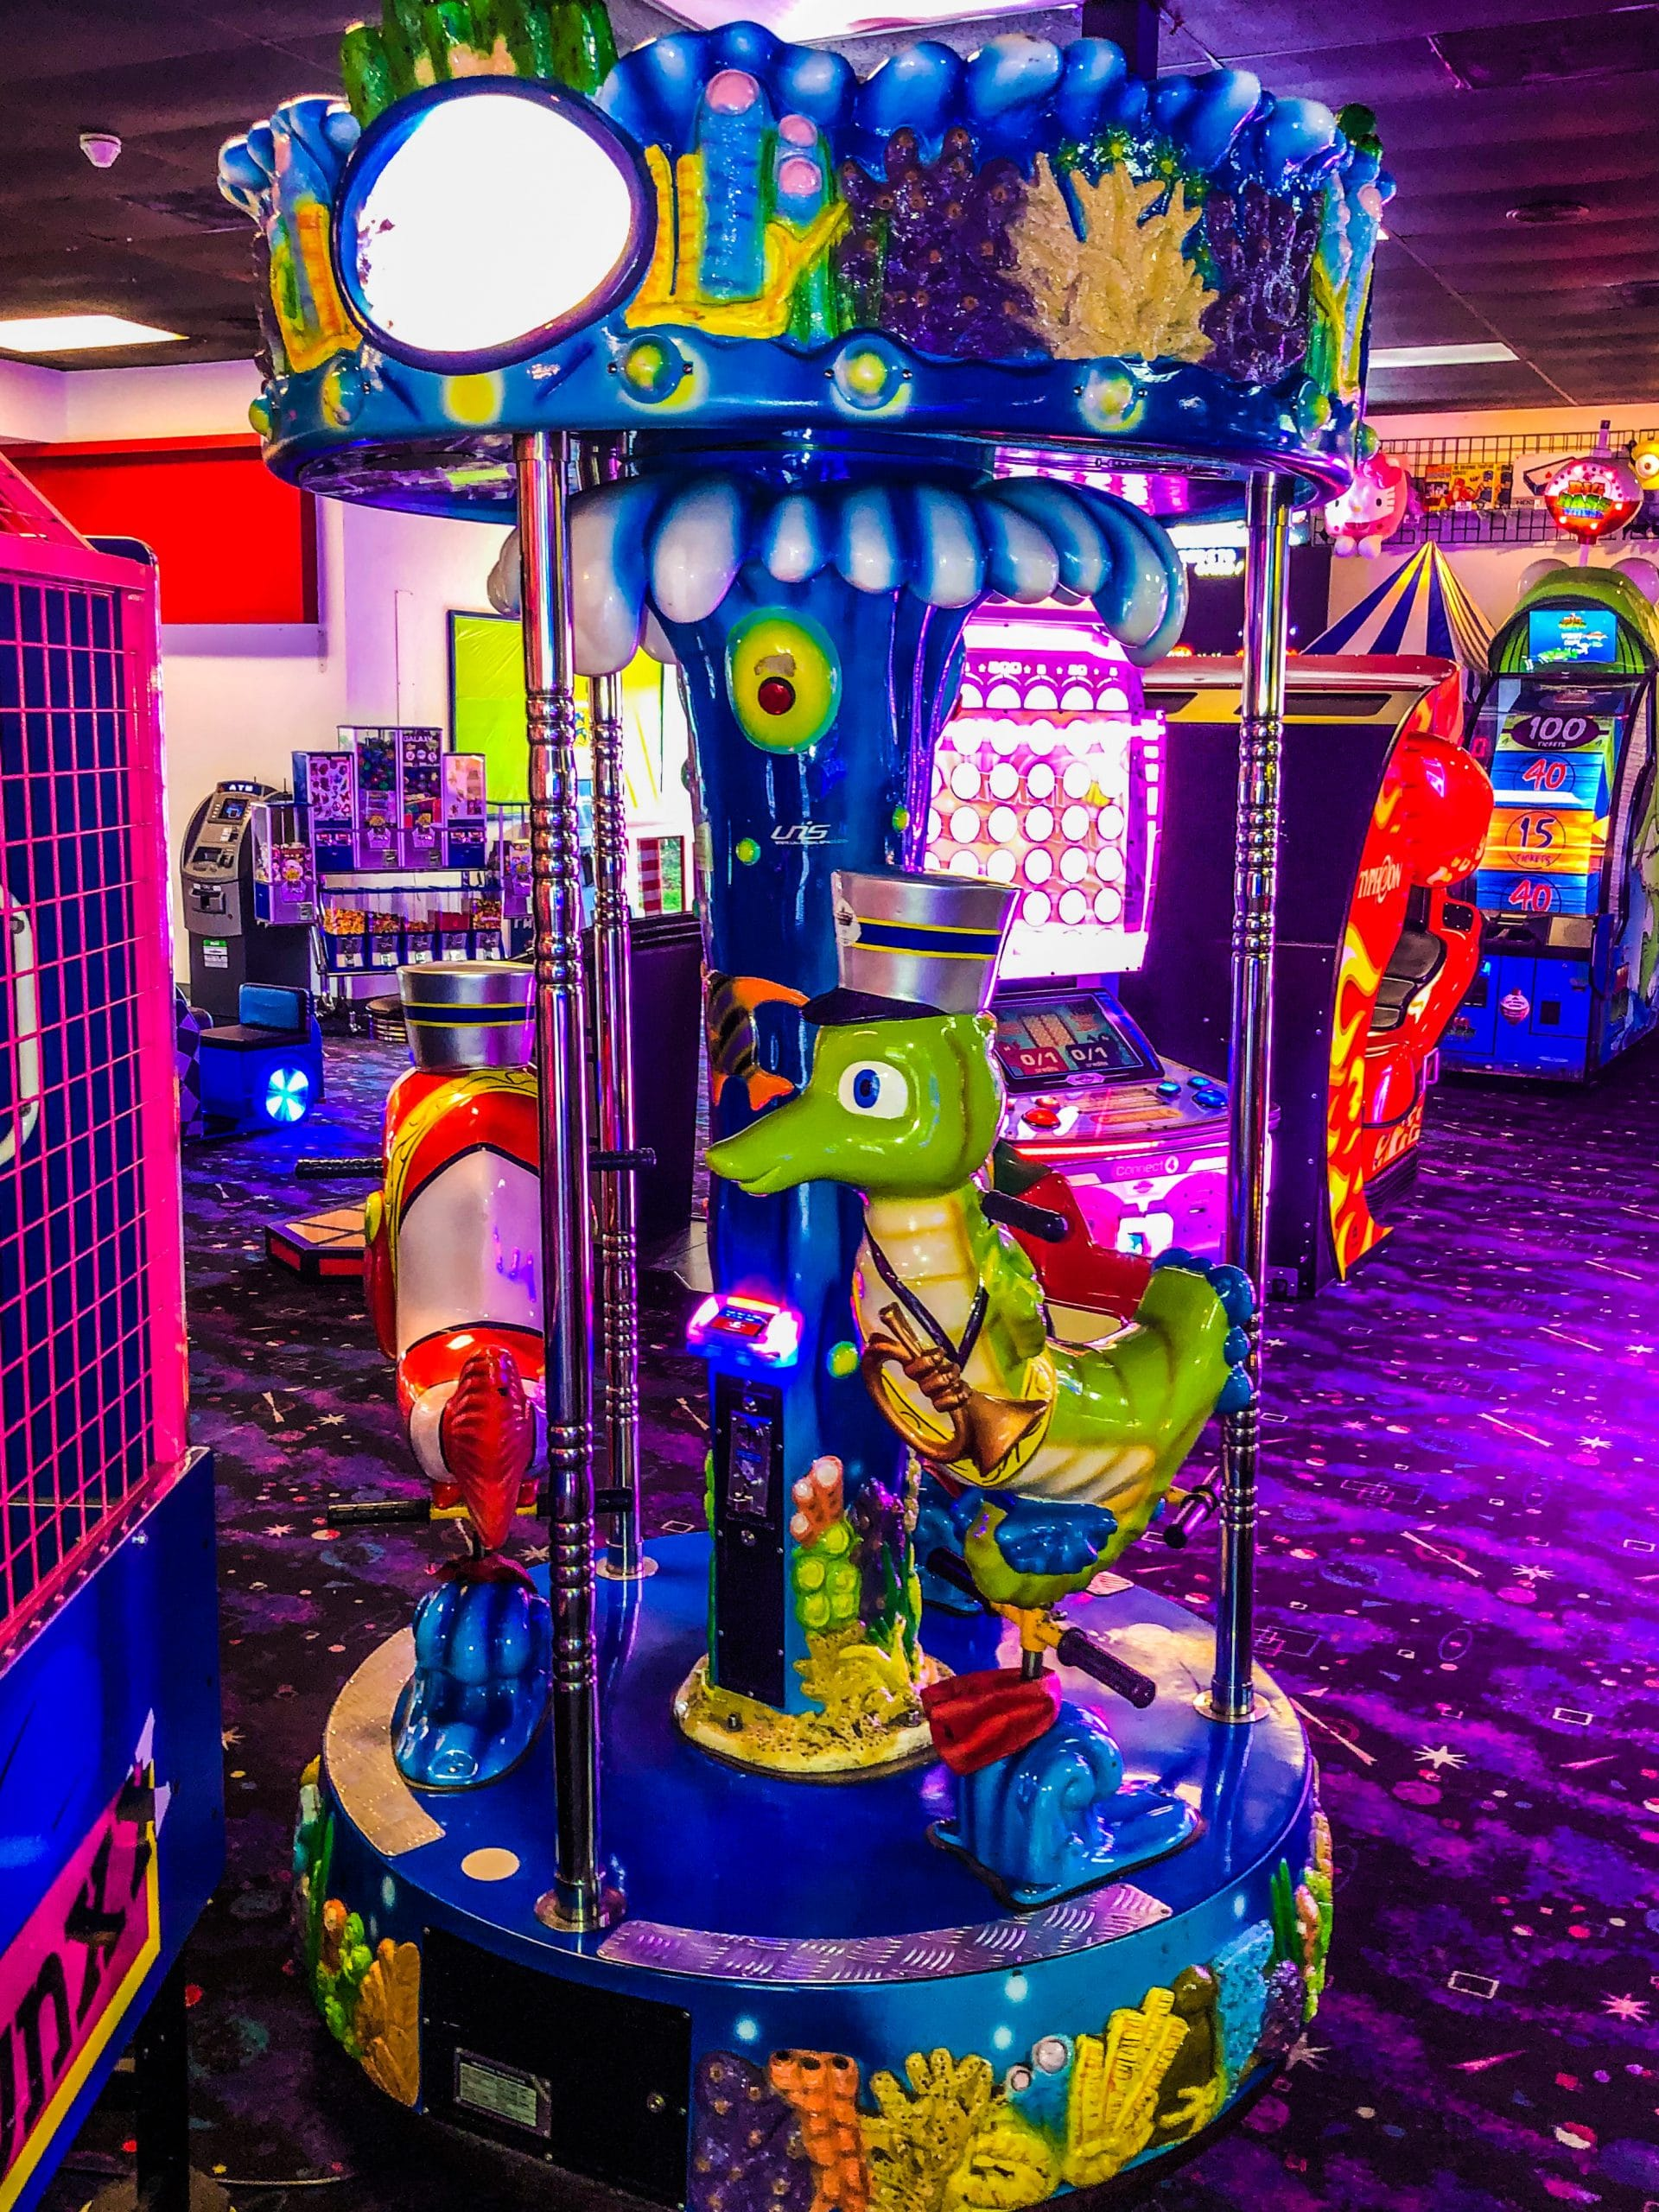 Arcade Game - Mini Carousel